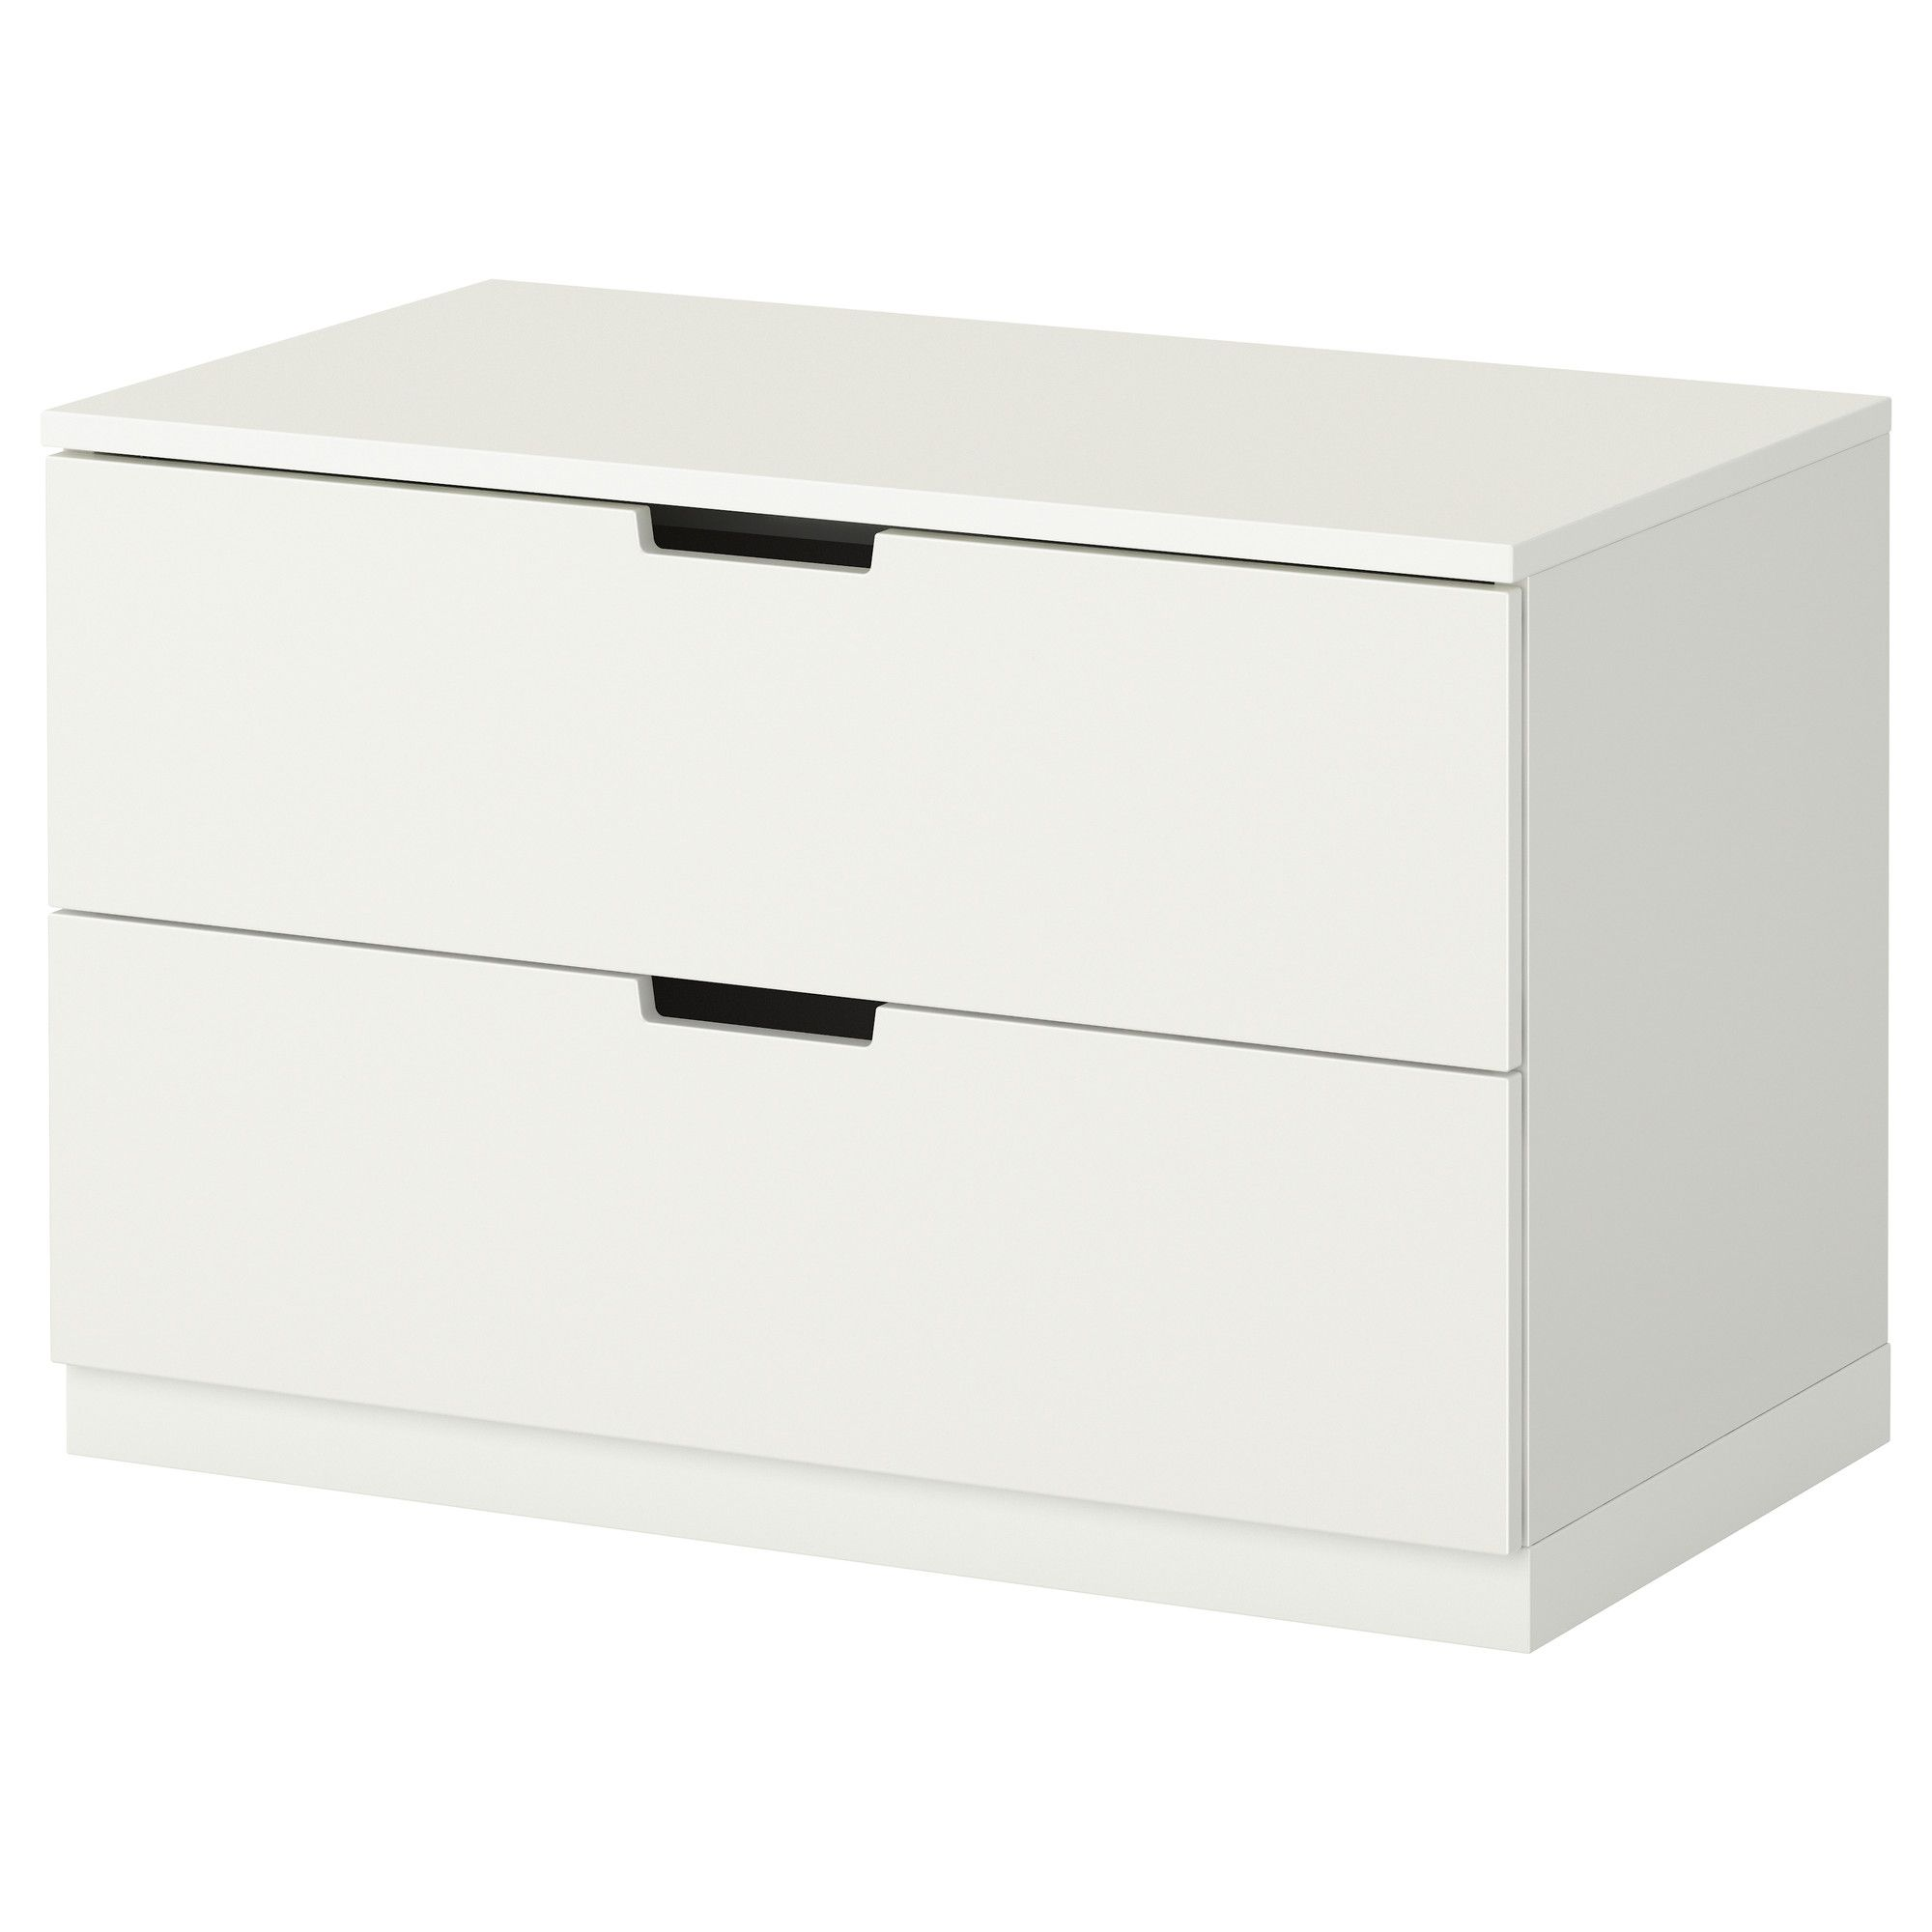 Nordli kommode mit 2 schubladen wei drawers for Kommode schubladen